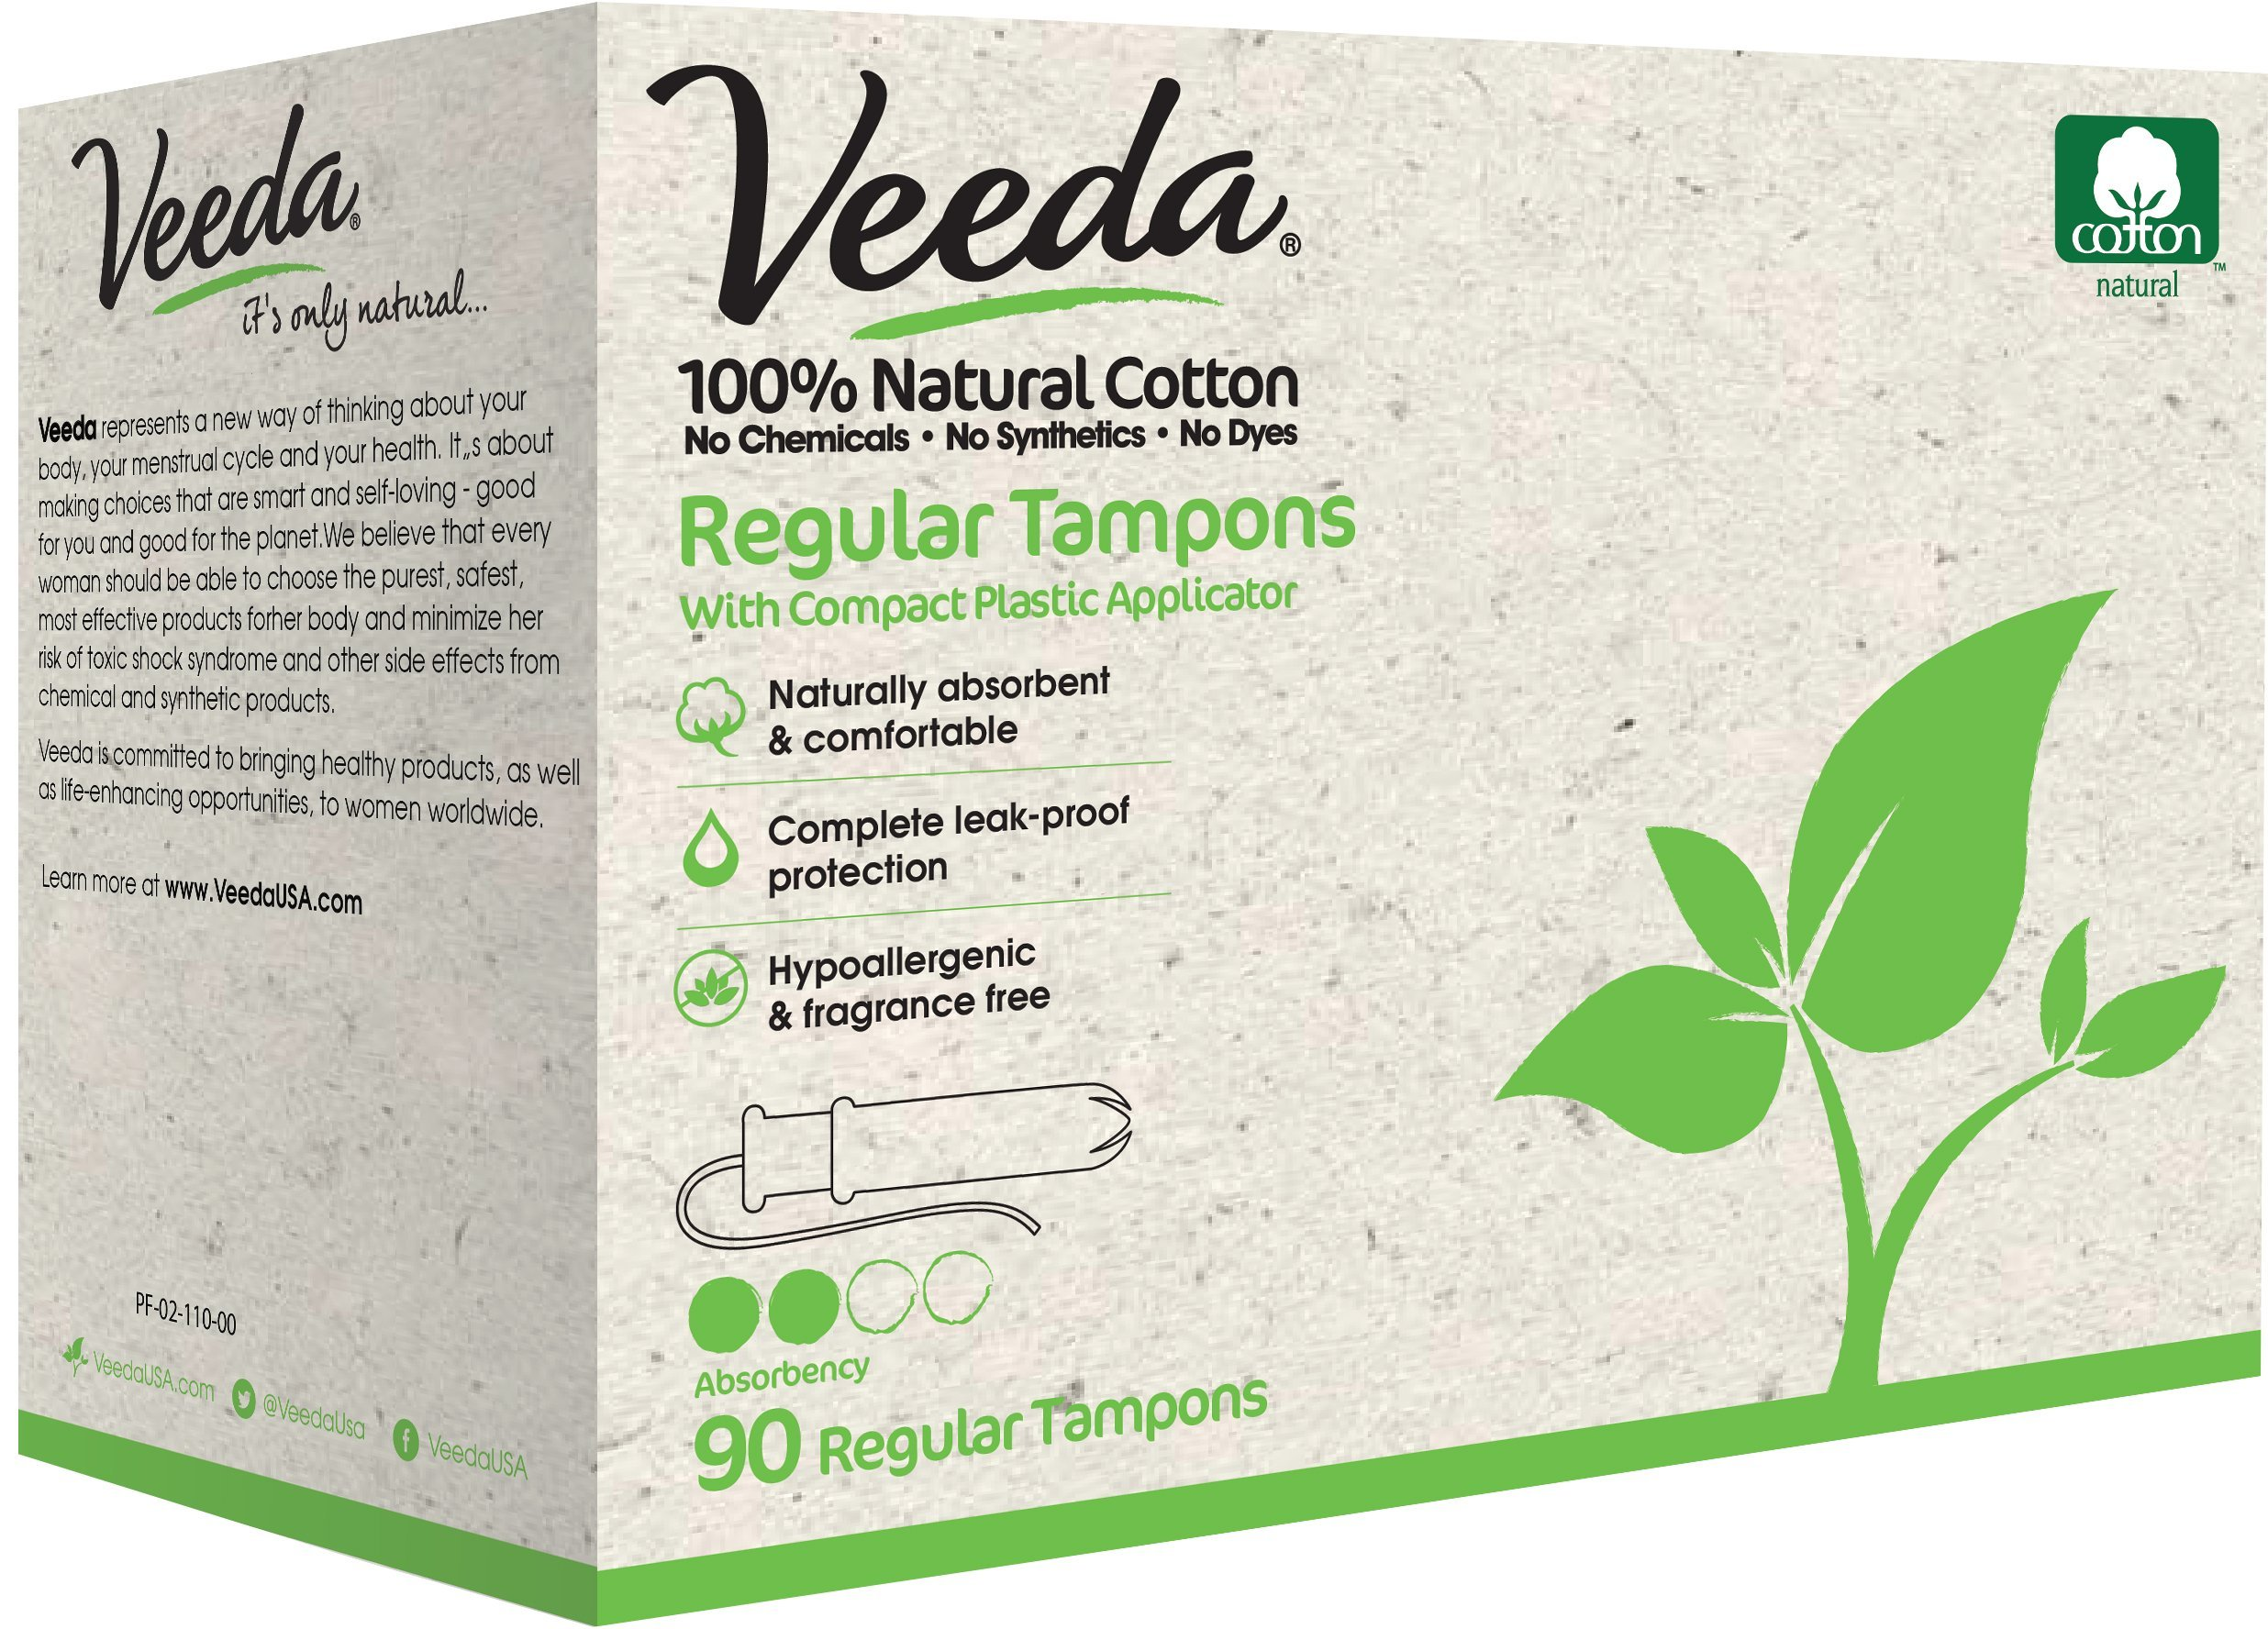 Veeda Natural All-Cotton Tampons, Regular, 90 Count by Veeda